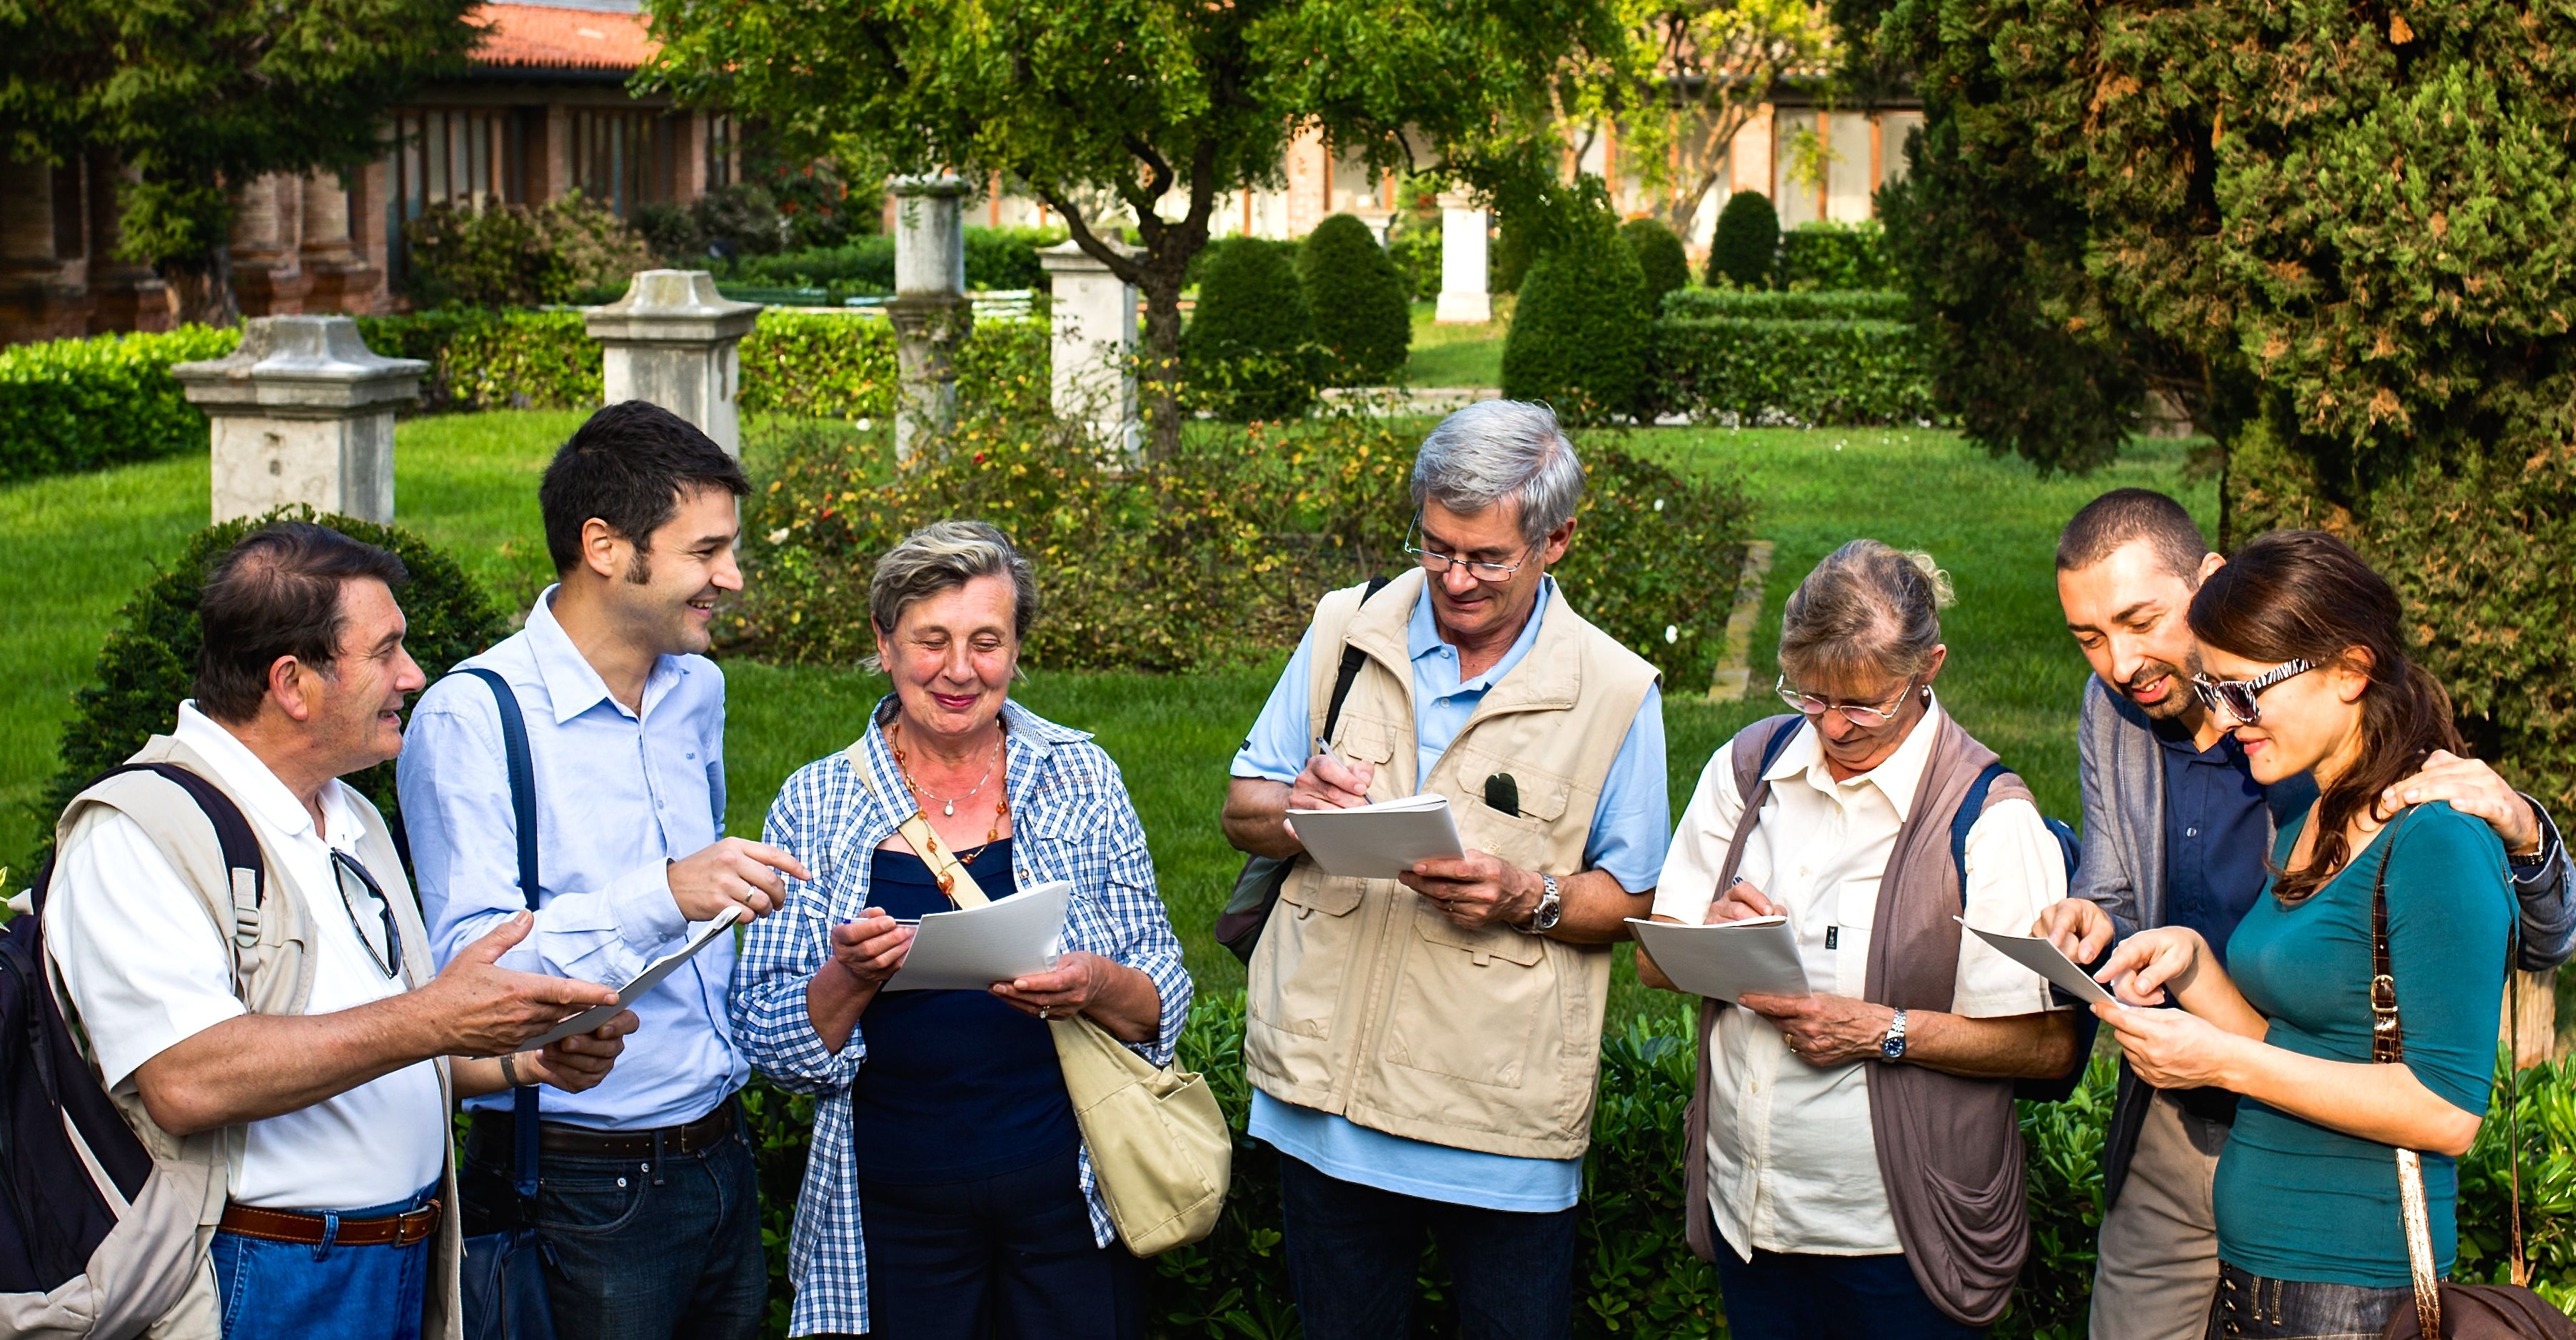 Venice garden tour with Easy Italian language and Art school